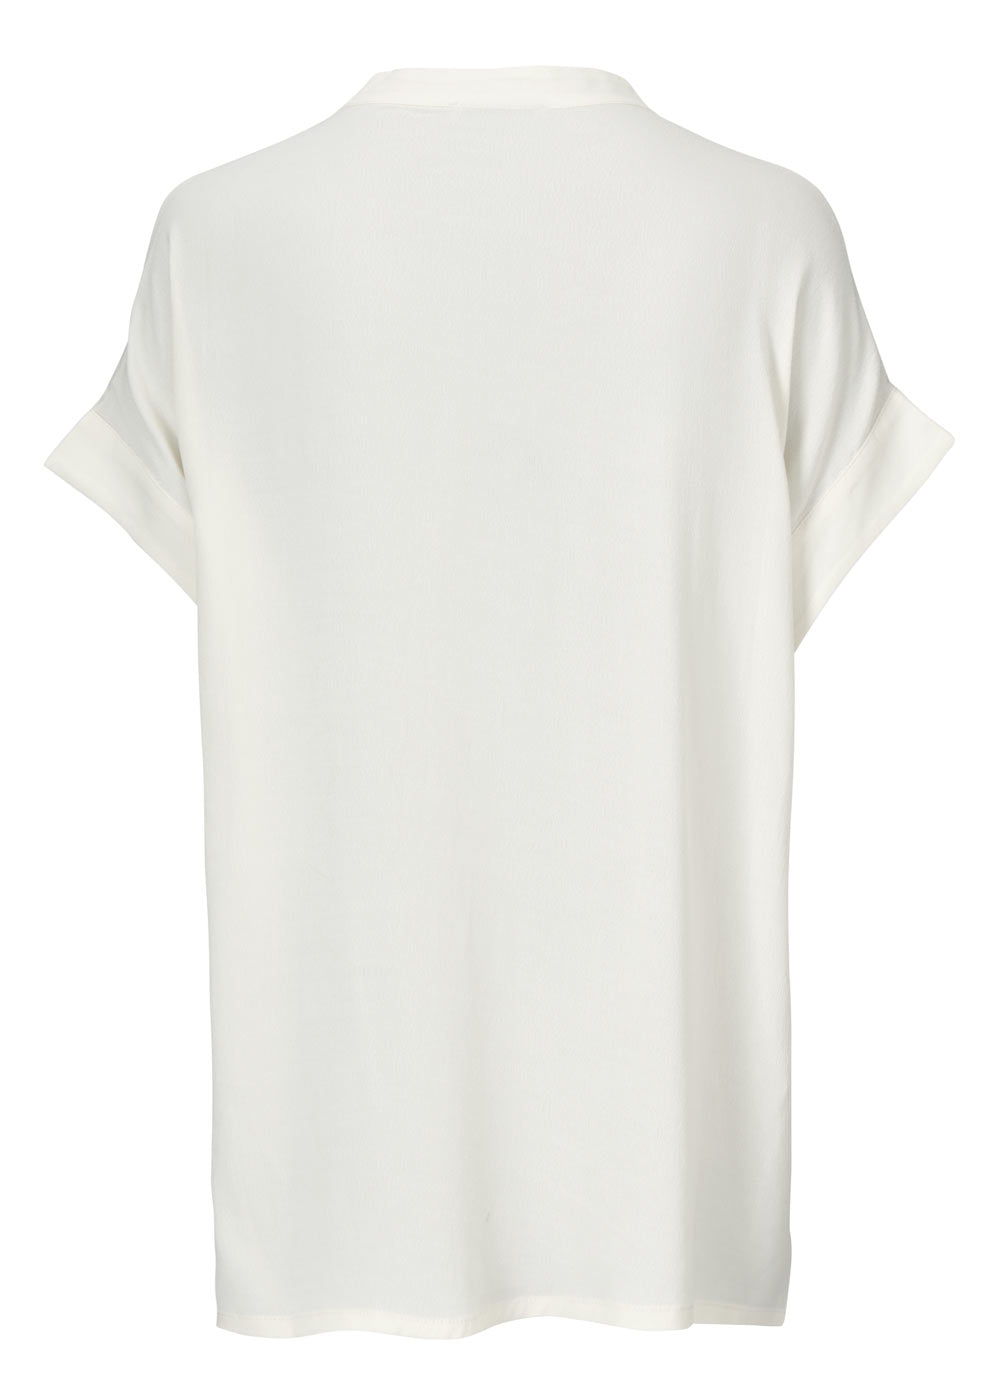 Modström Connor Top Off White - Mojo Independent Store